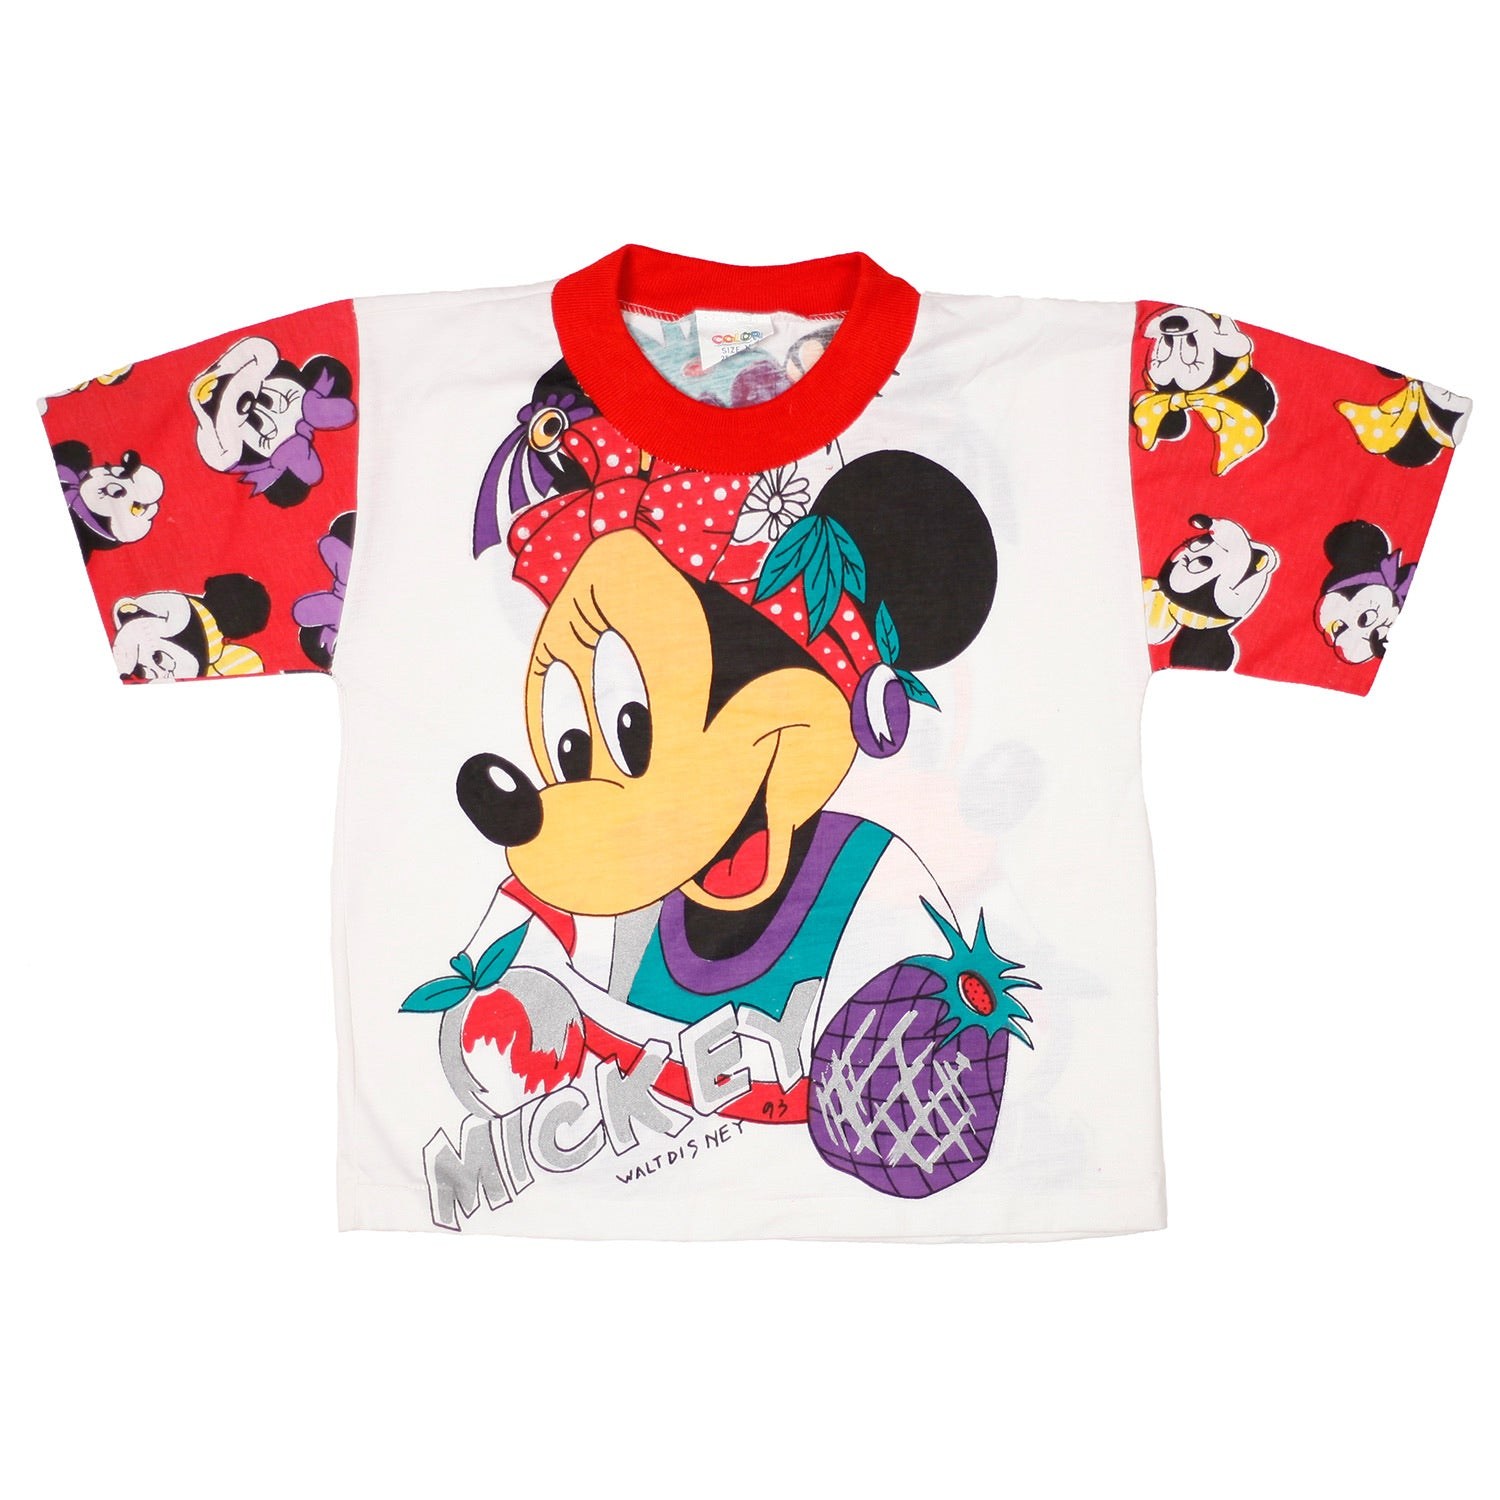 Minnie Mouse set size 4